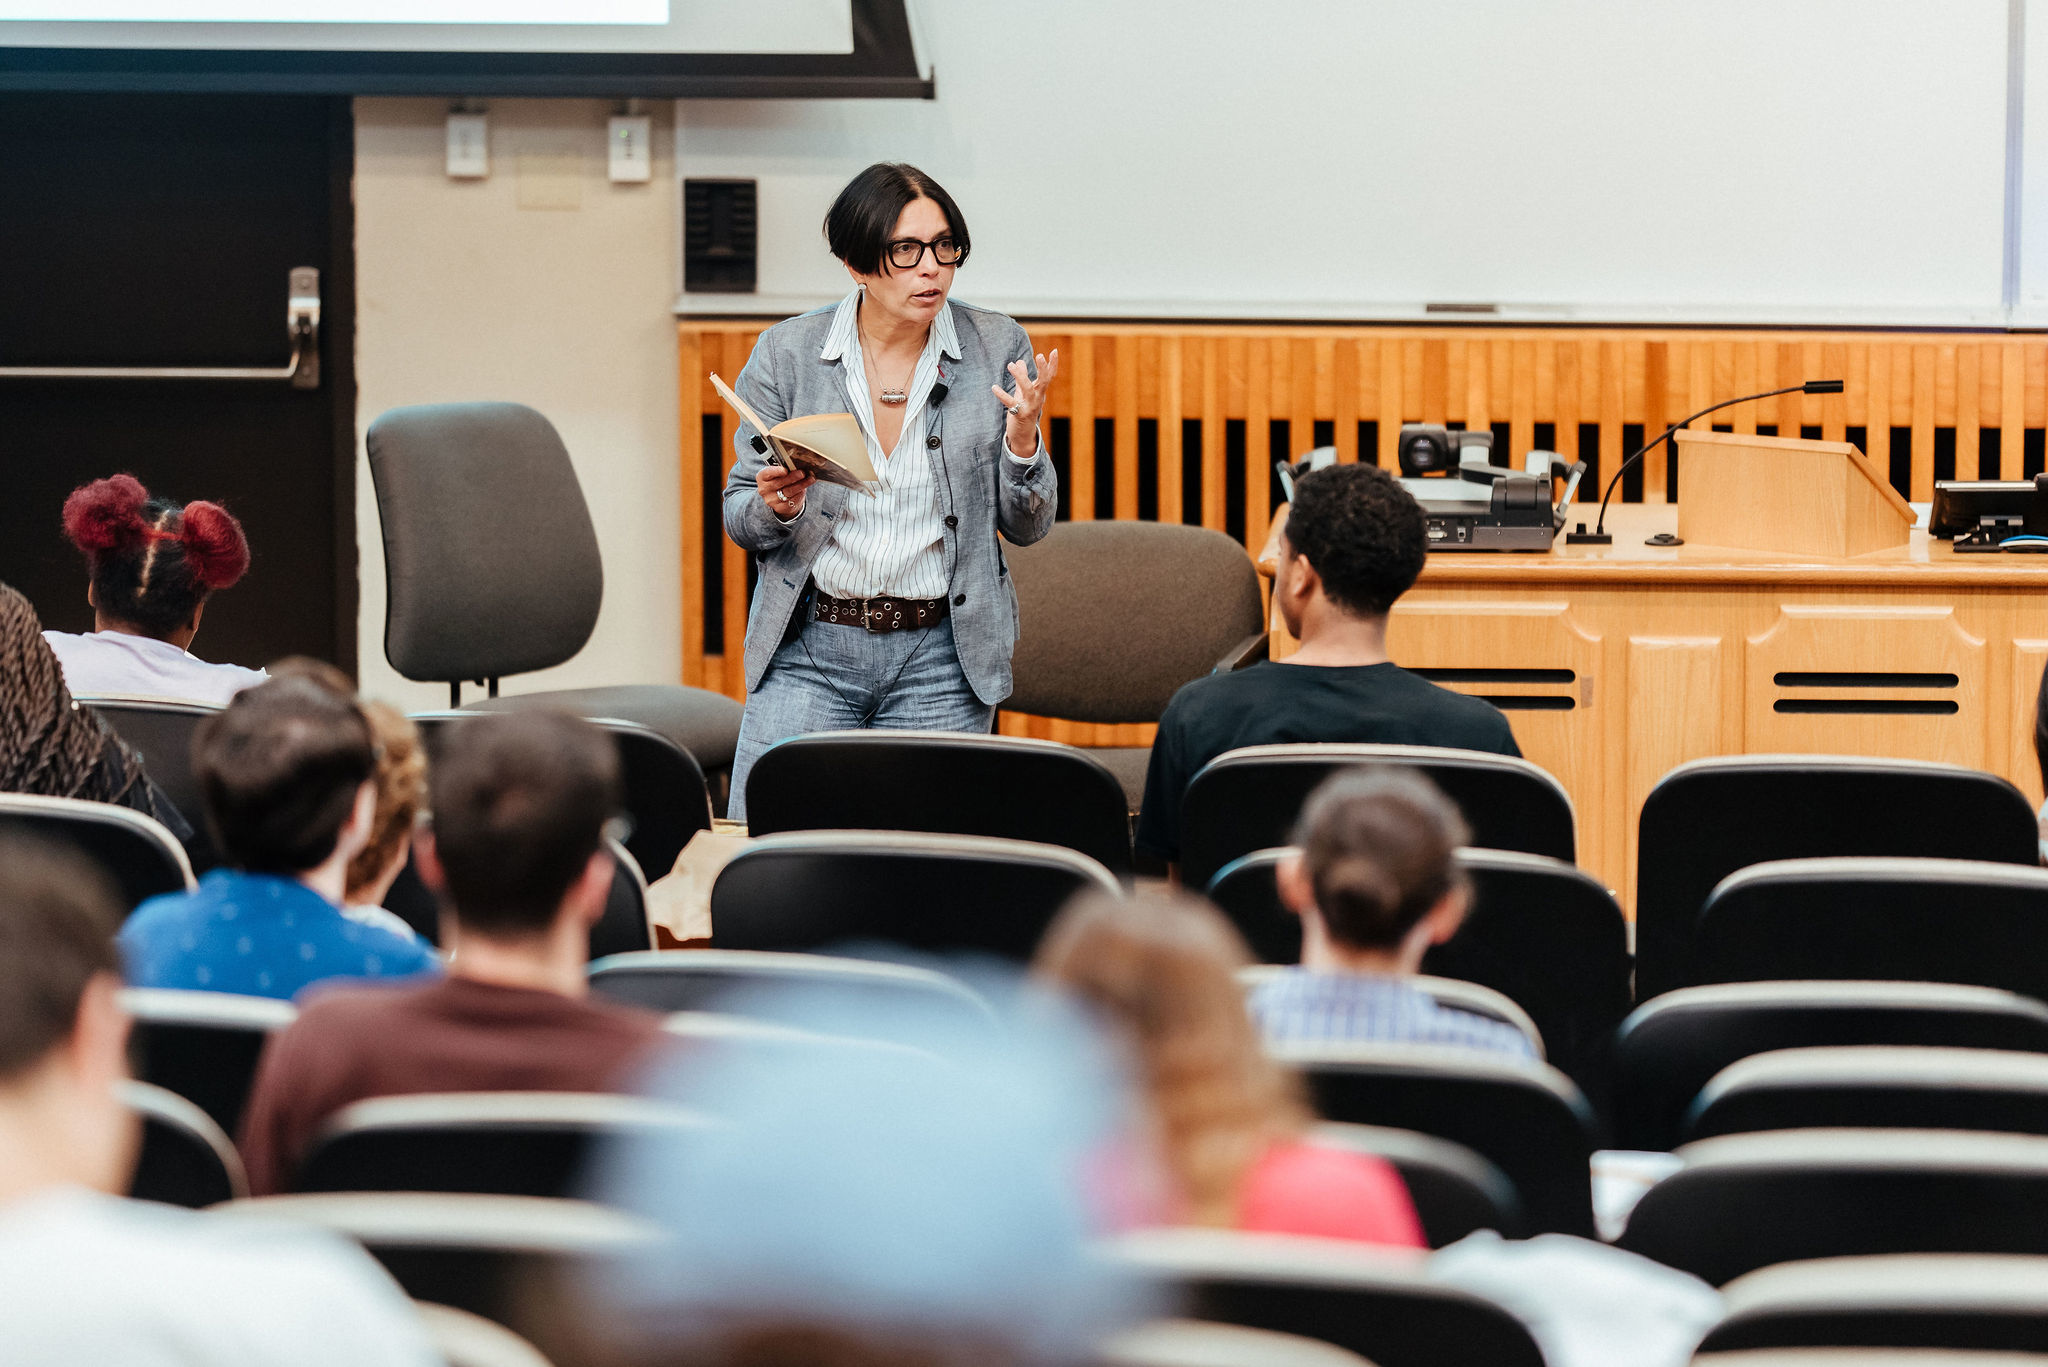 professor lecturing at front of lecture hall